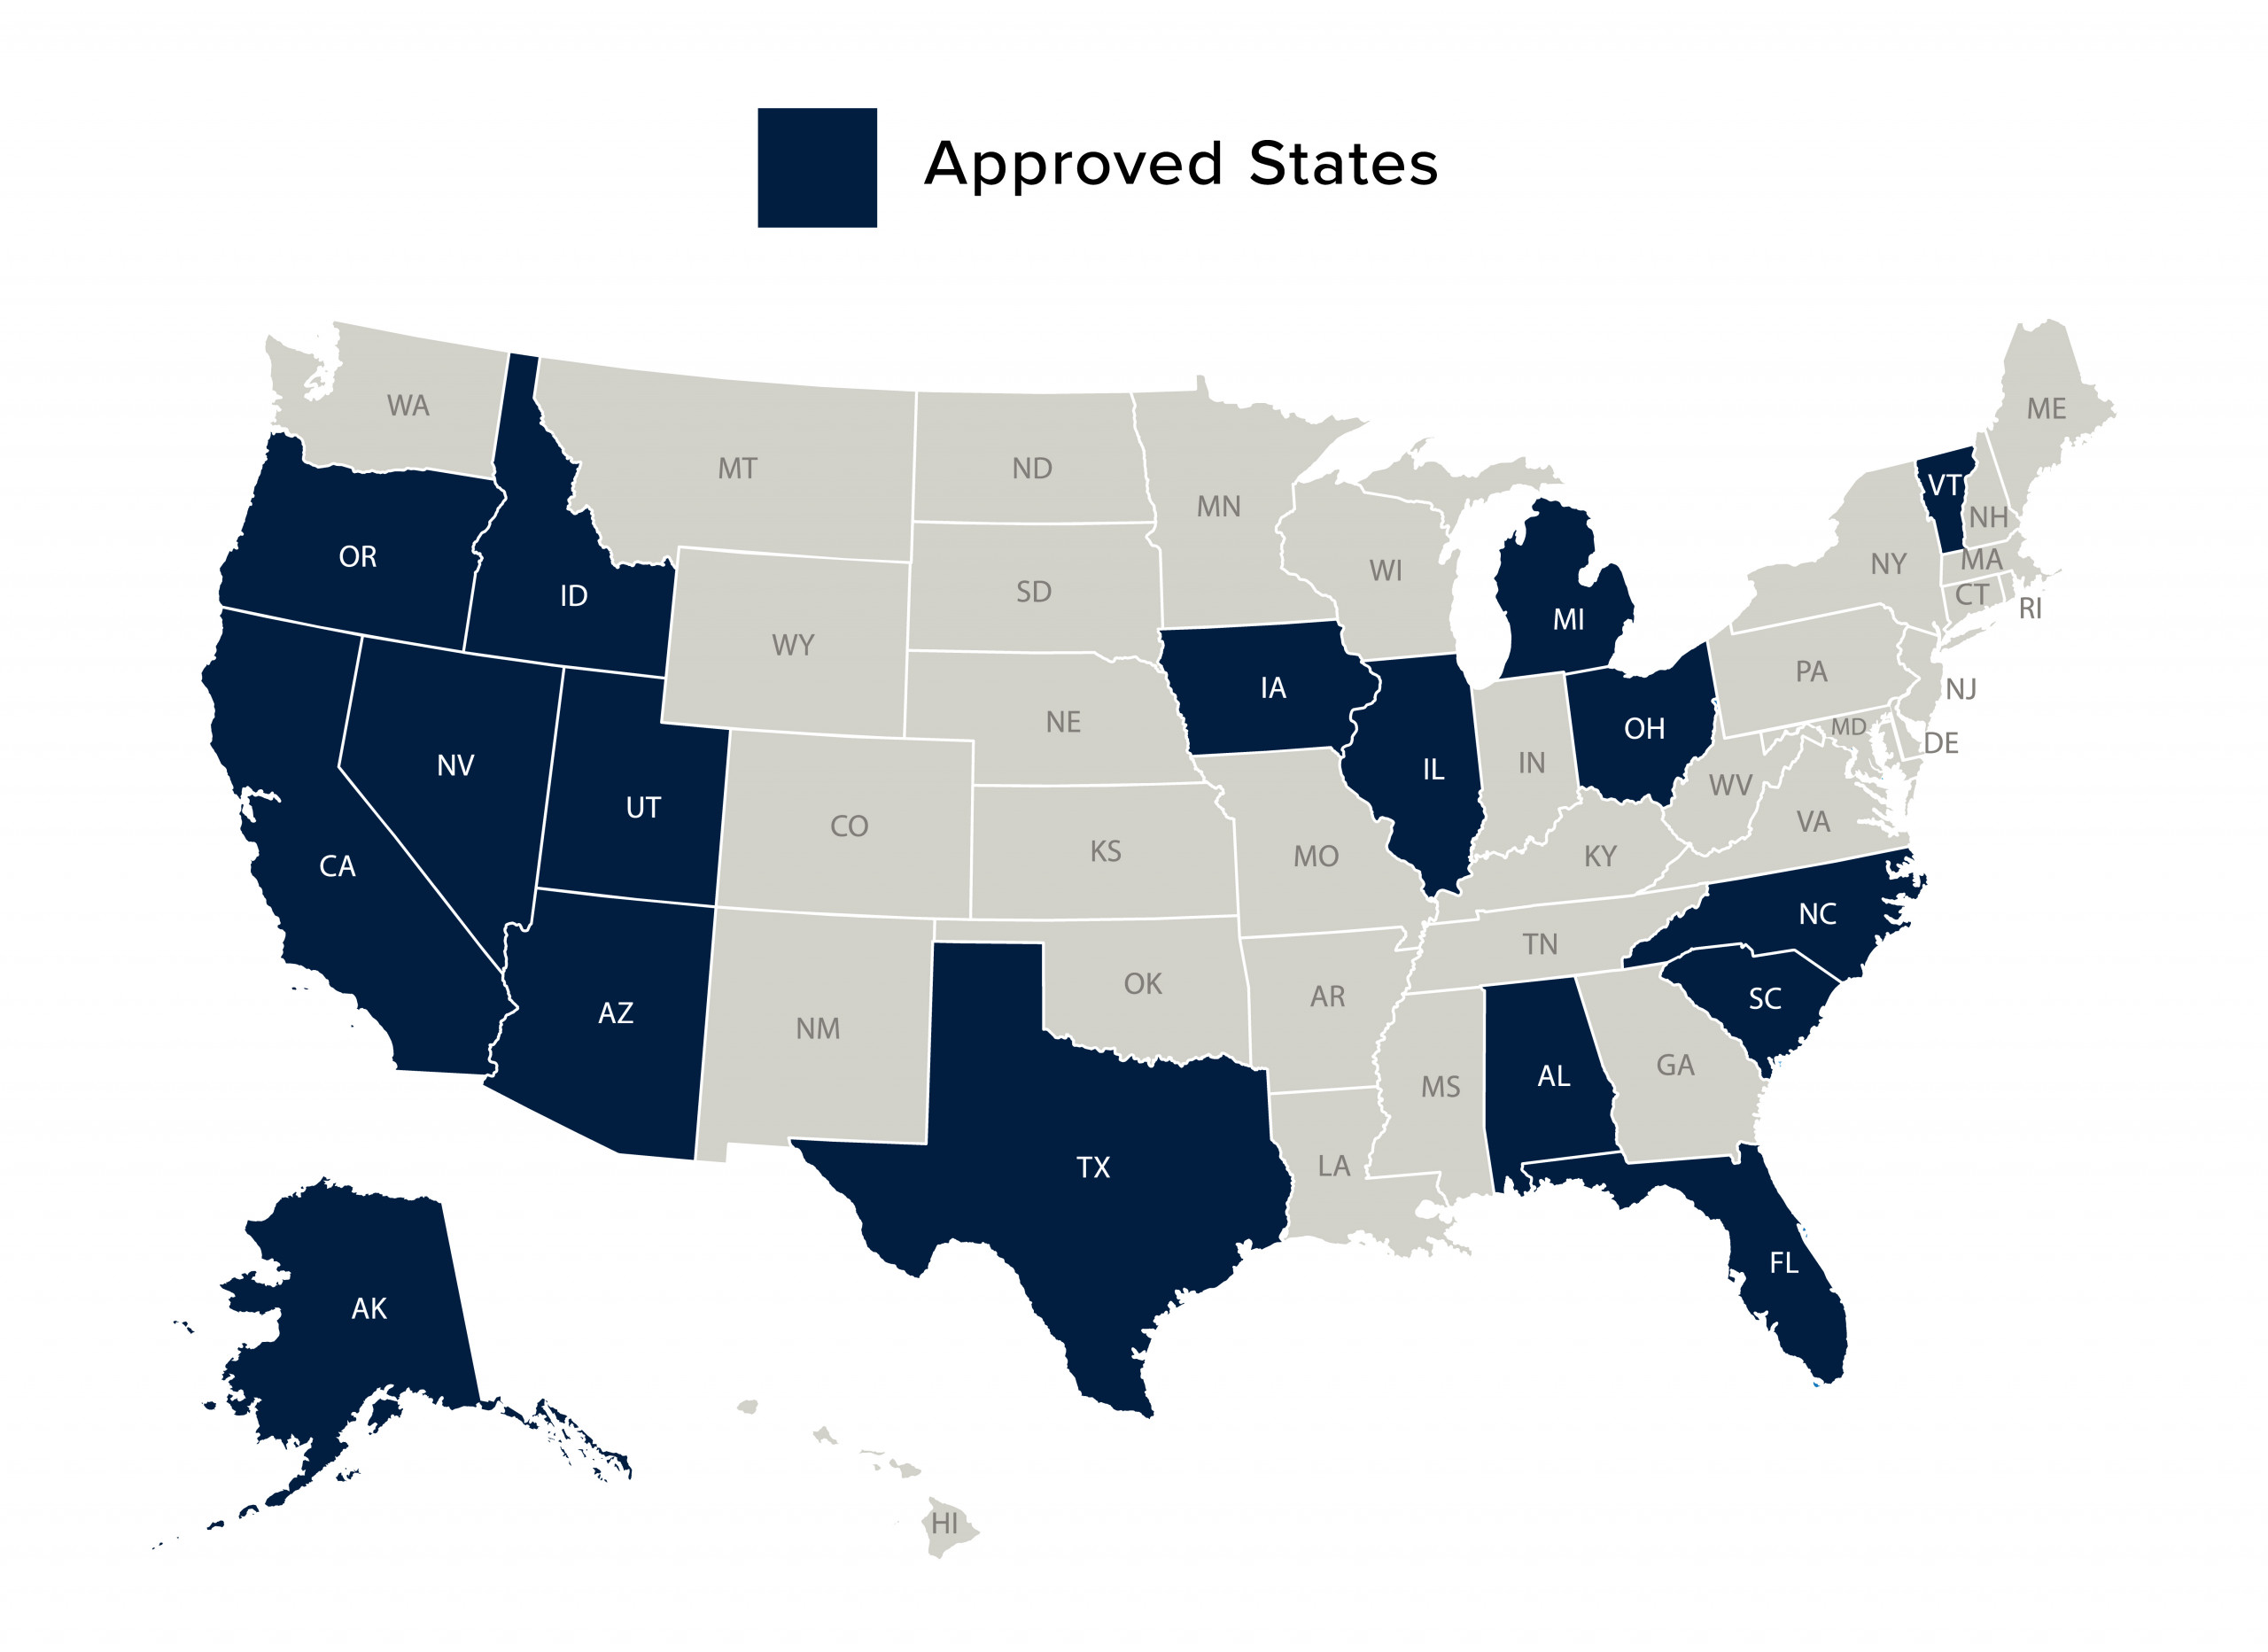 Map of Approved States for Practice Experiences